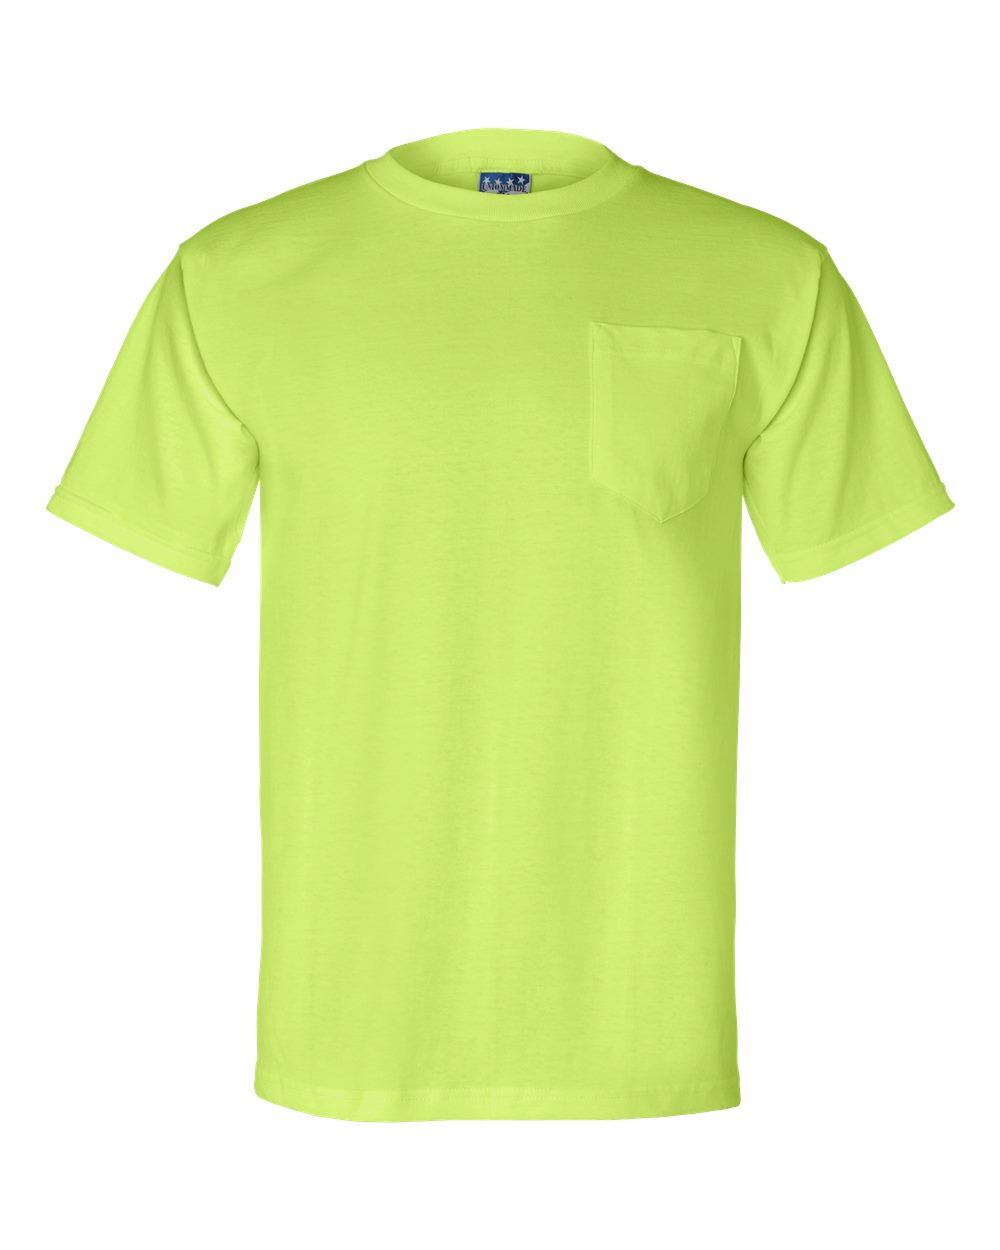 Bayside-Mens-Union-Made-Short-Sleeve-T-Shirt-with-a-Pocket-3015-up-to-3XL thumbnail 12